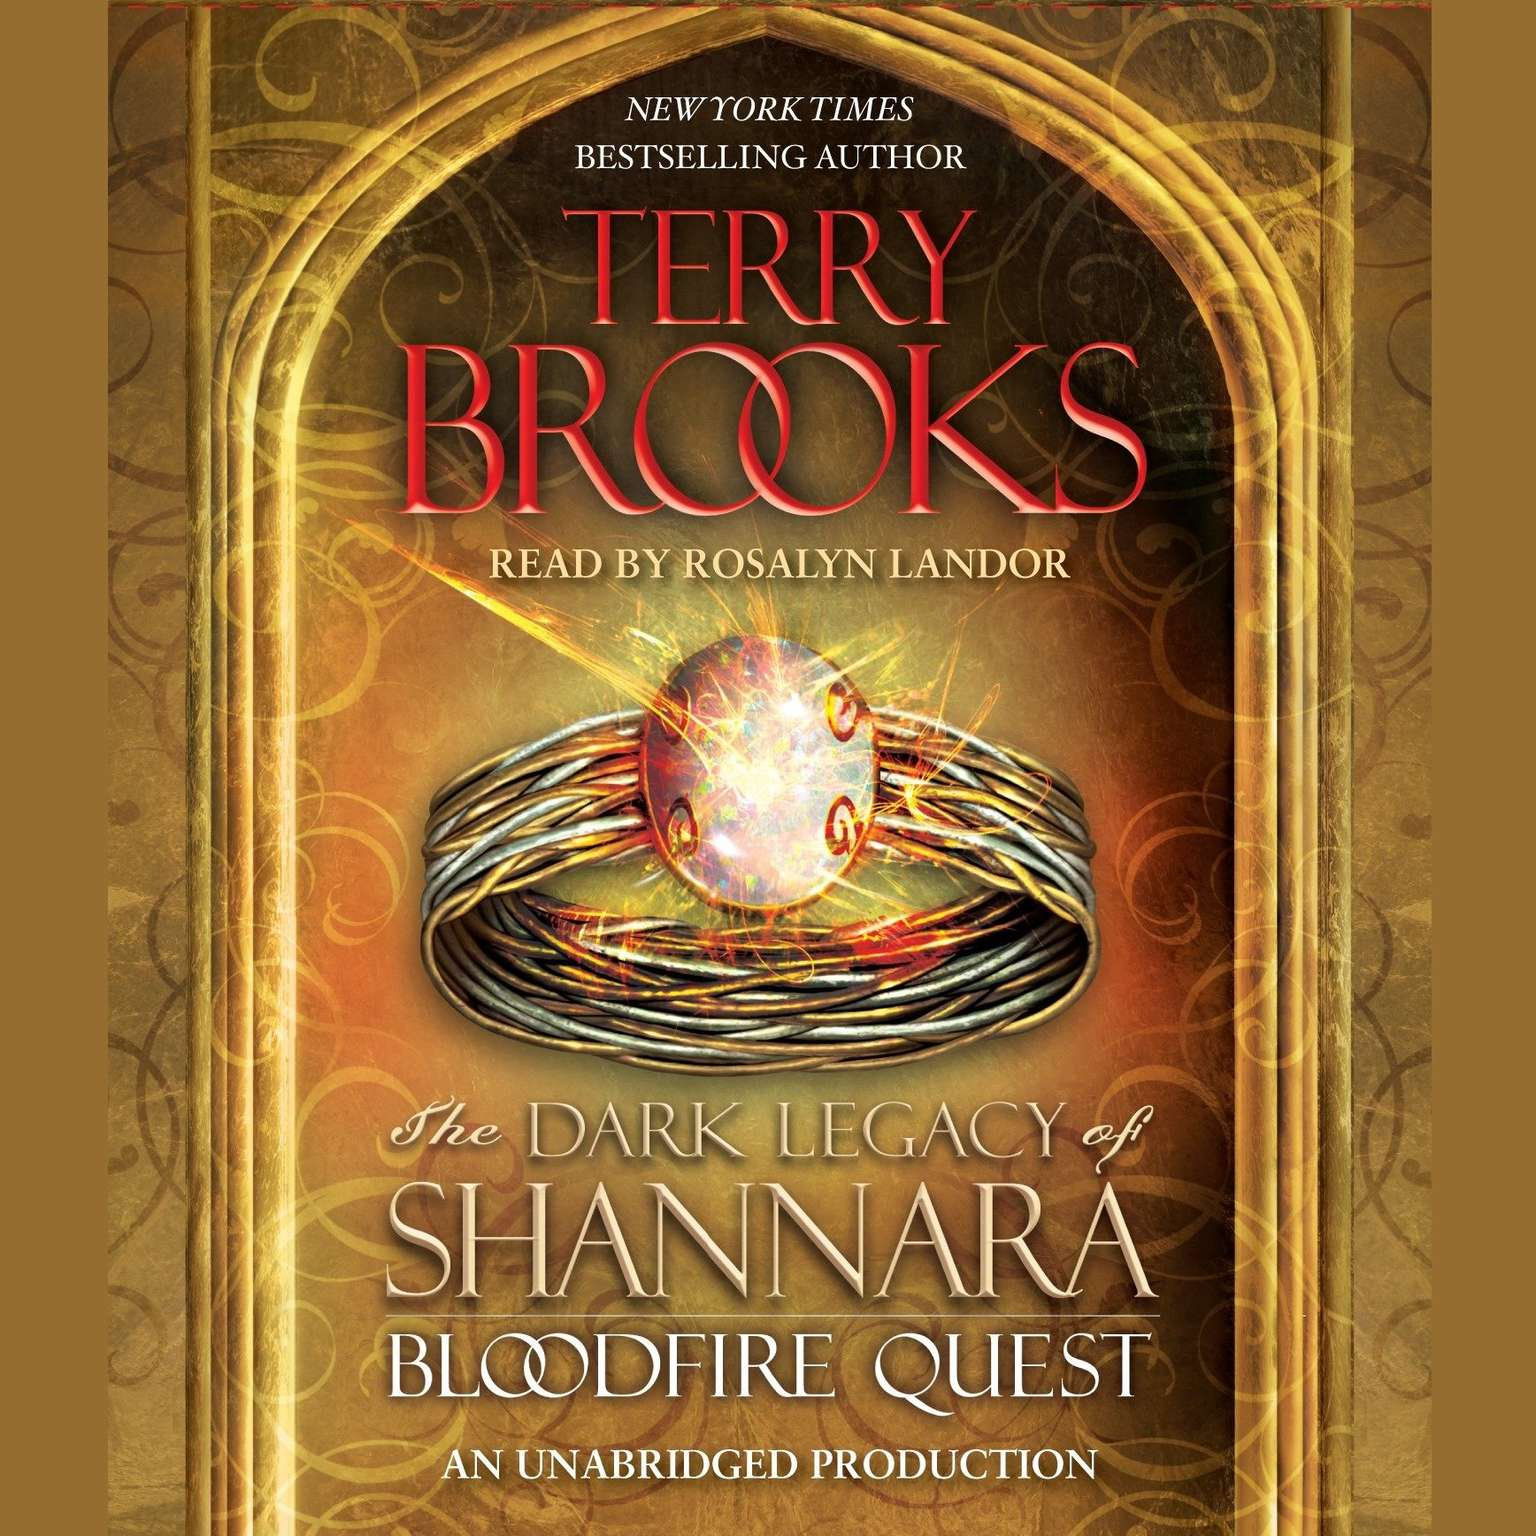 Printable Bloodfire Quest: The Dark Legacy of Shannara Audiobook Cover Art